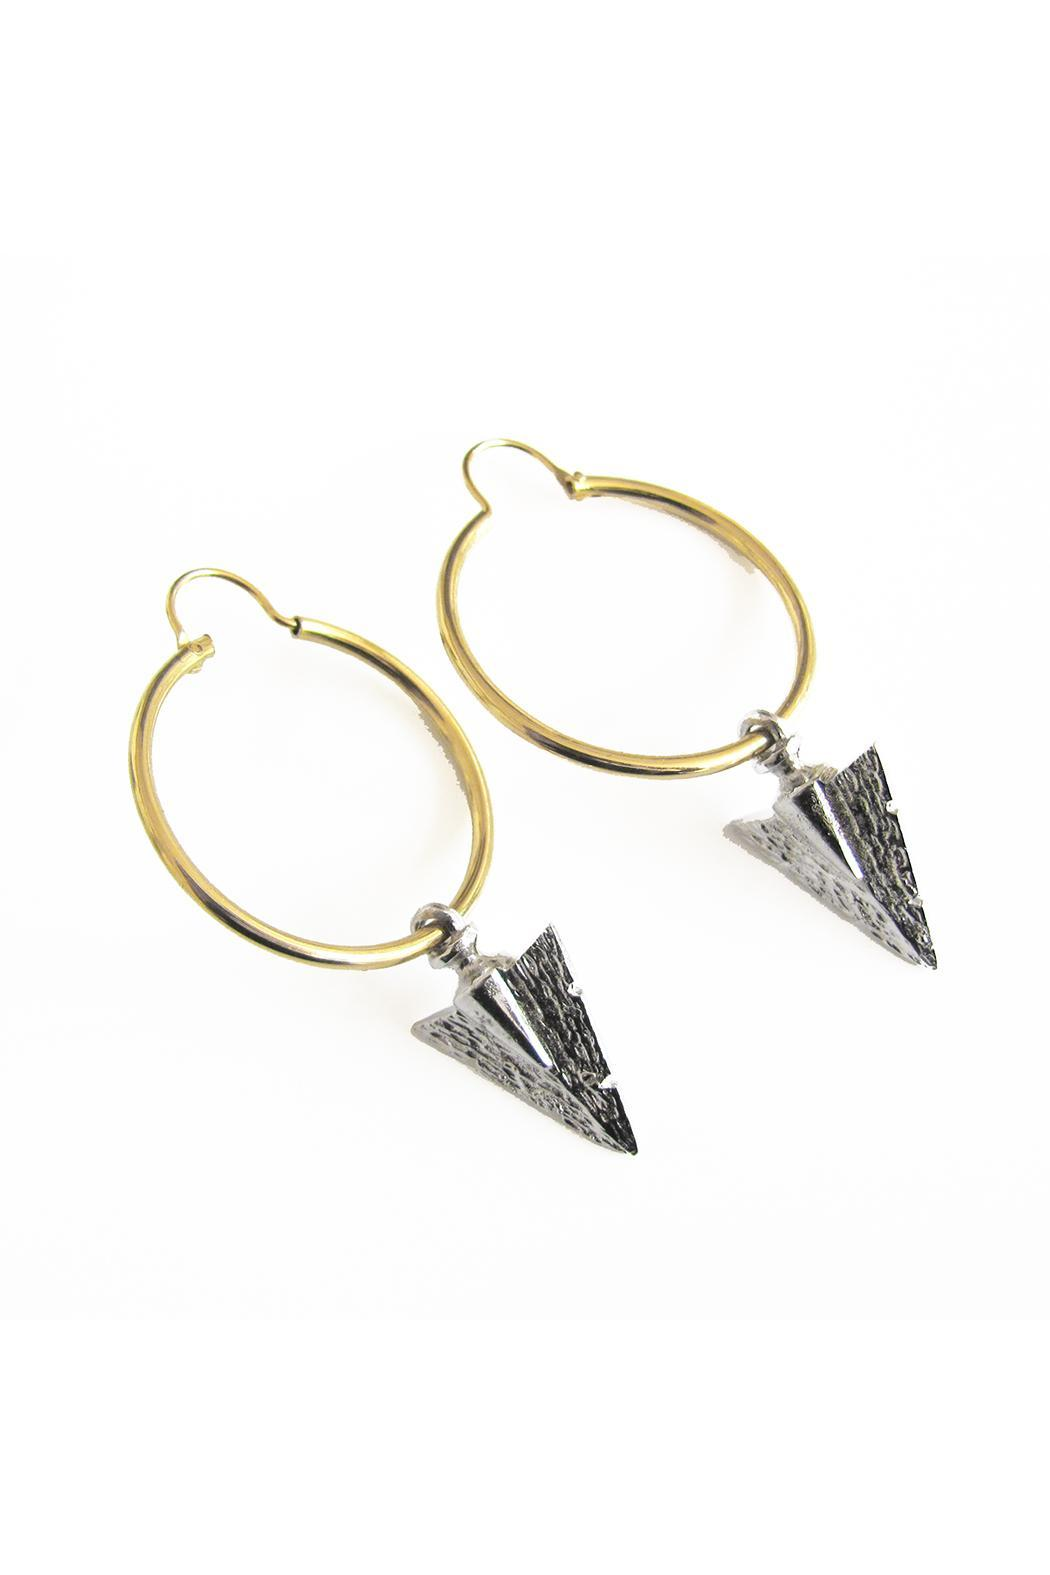 Malia Designs Silver Arrow Hoops - Main Image